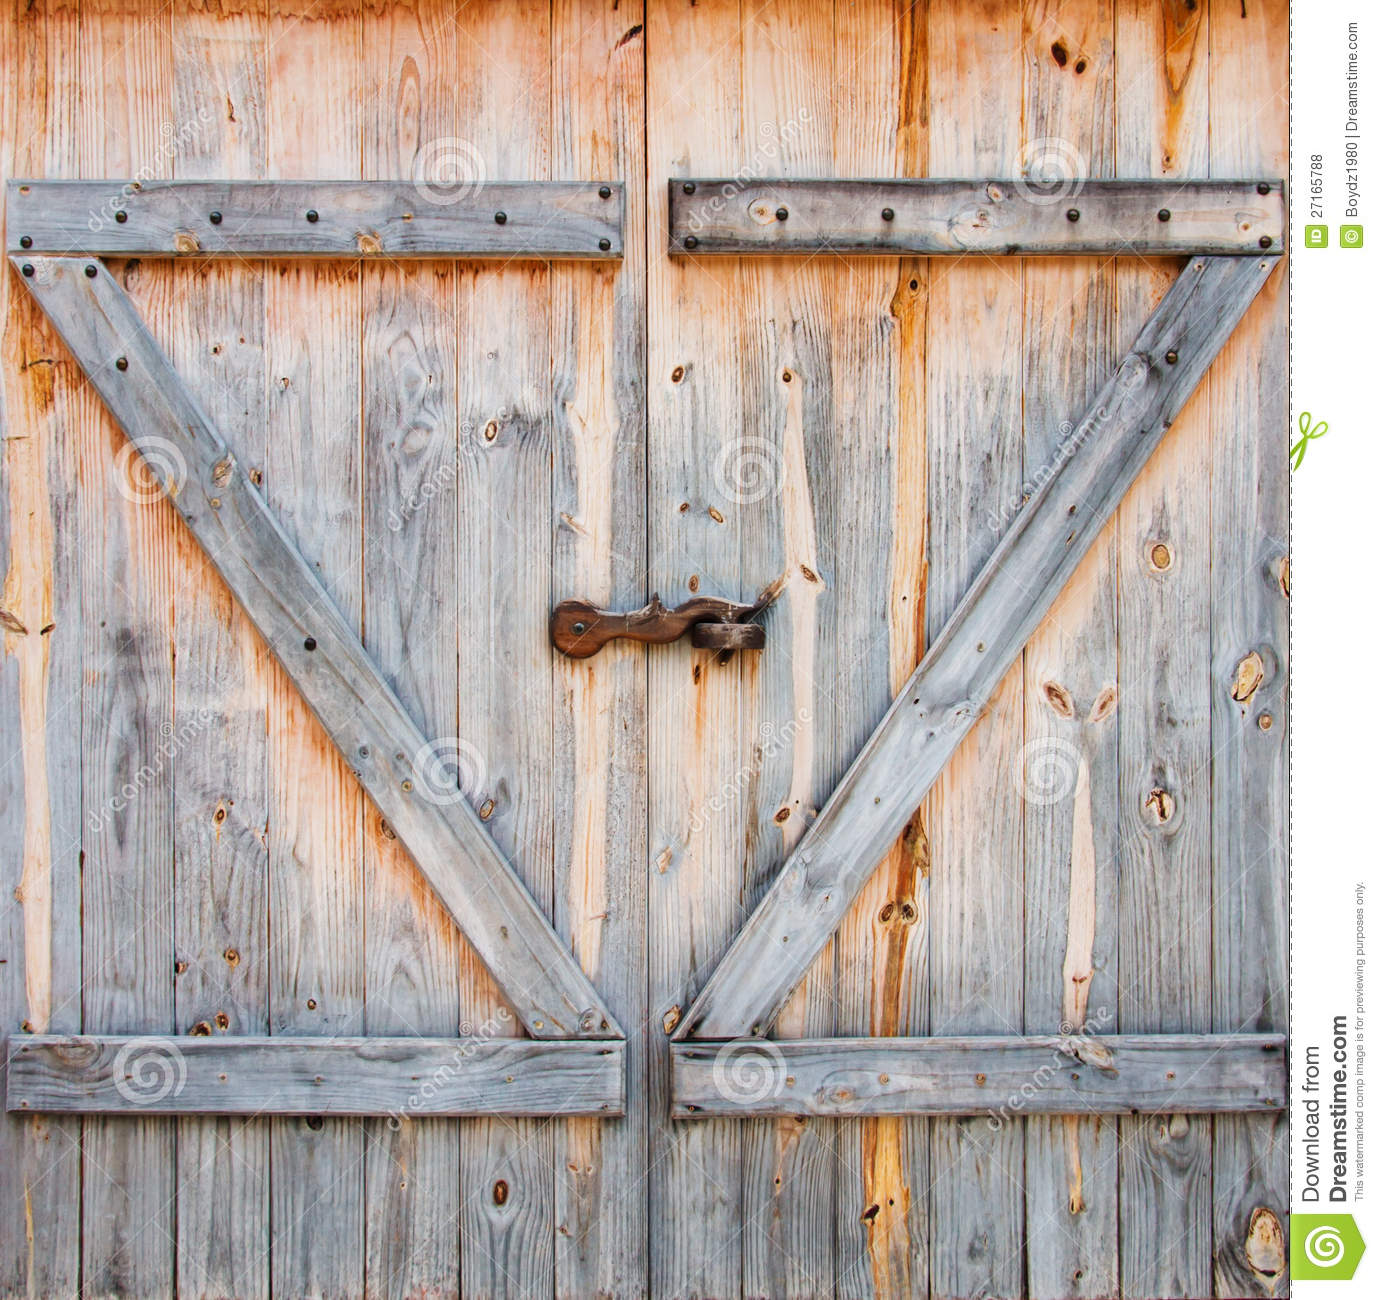 Barn door stock photo Image of decor gate front close